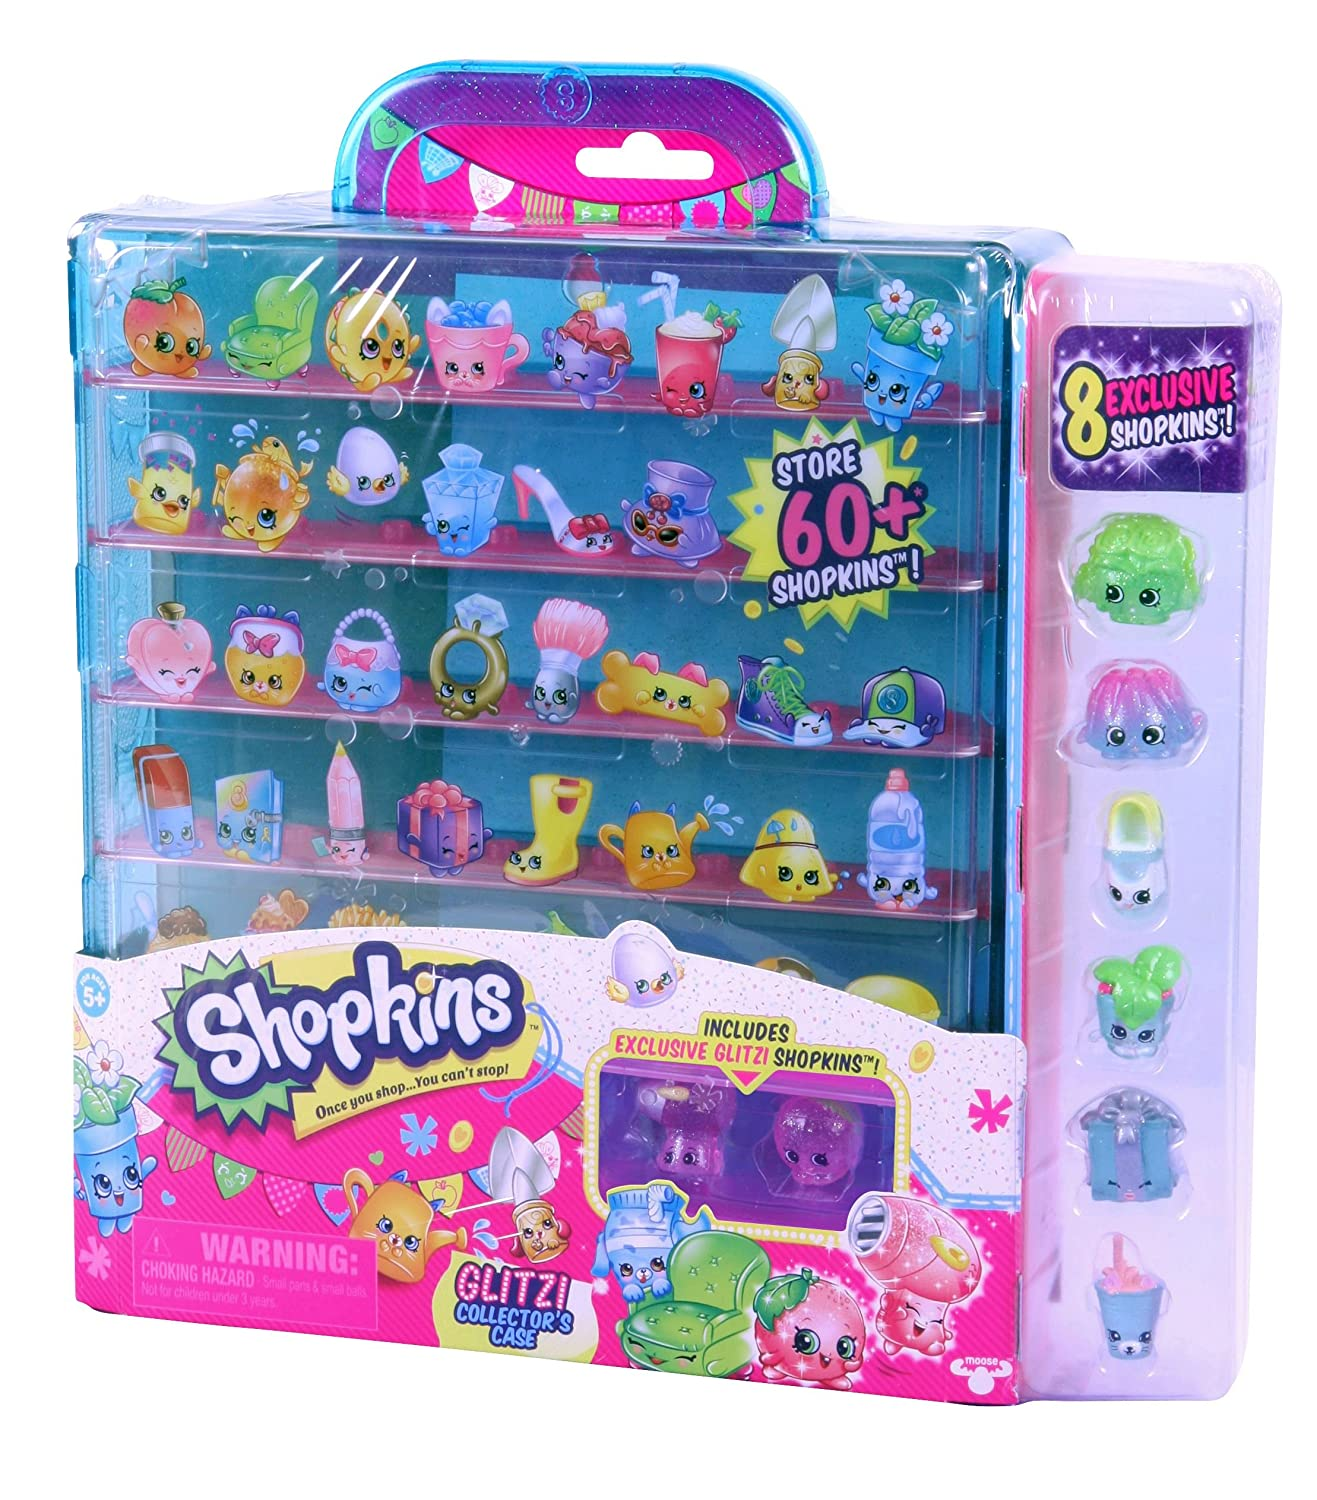 Collectors Case for Shopkins